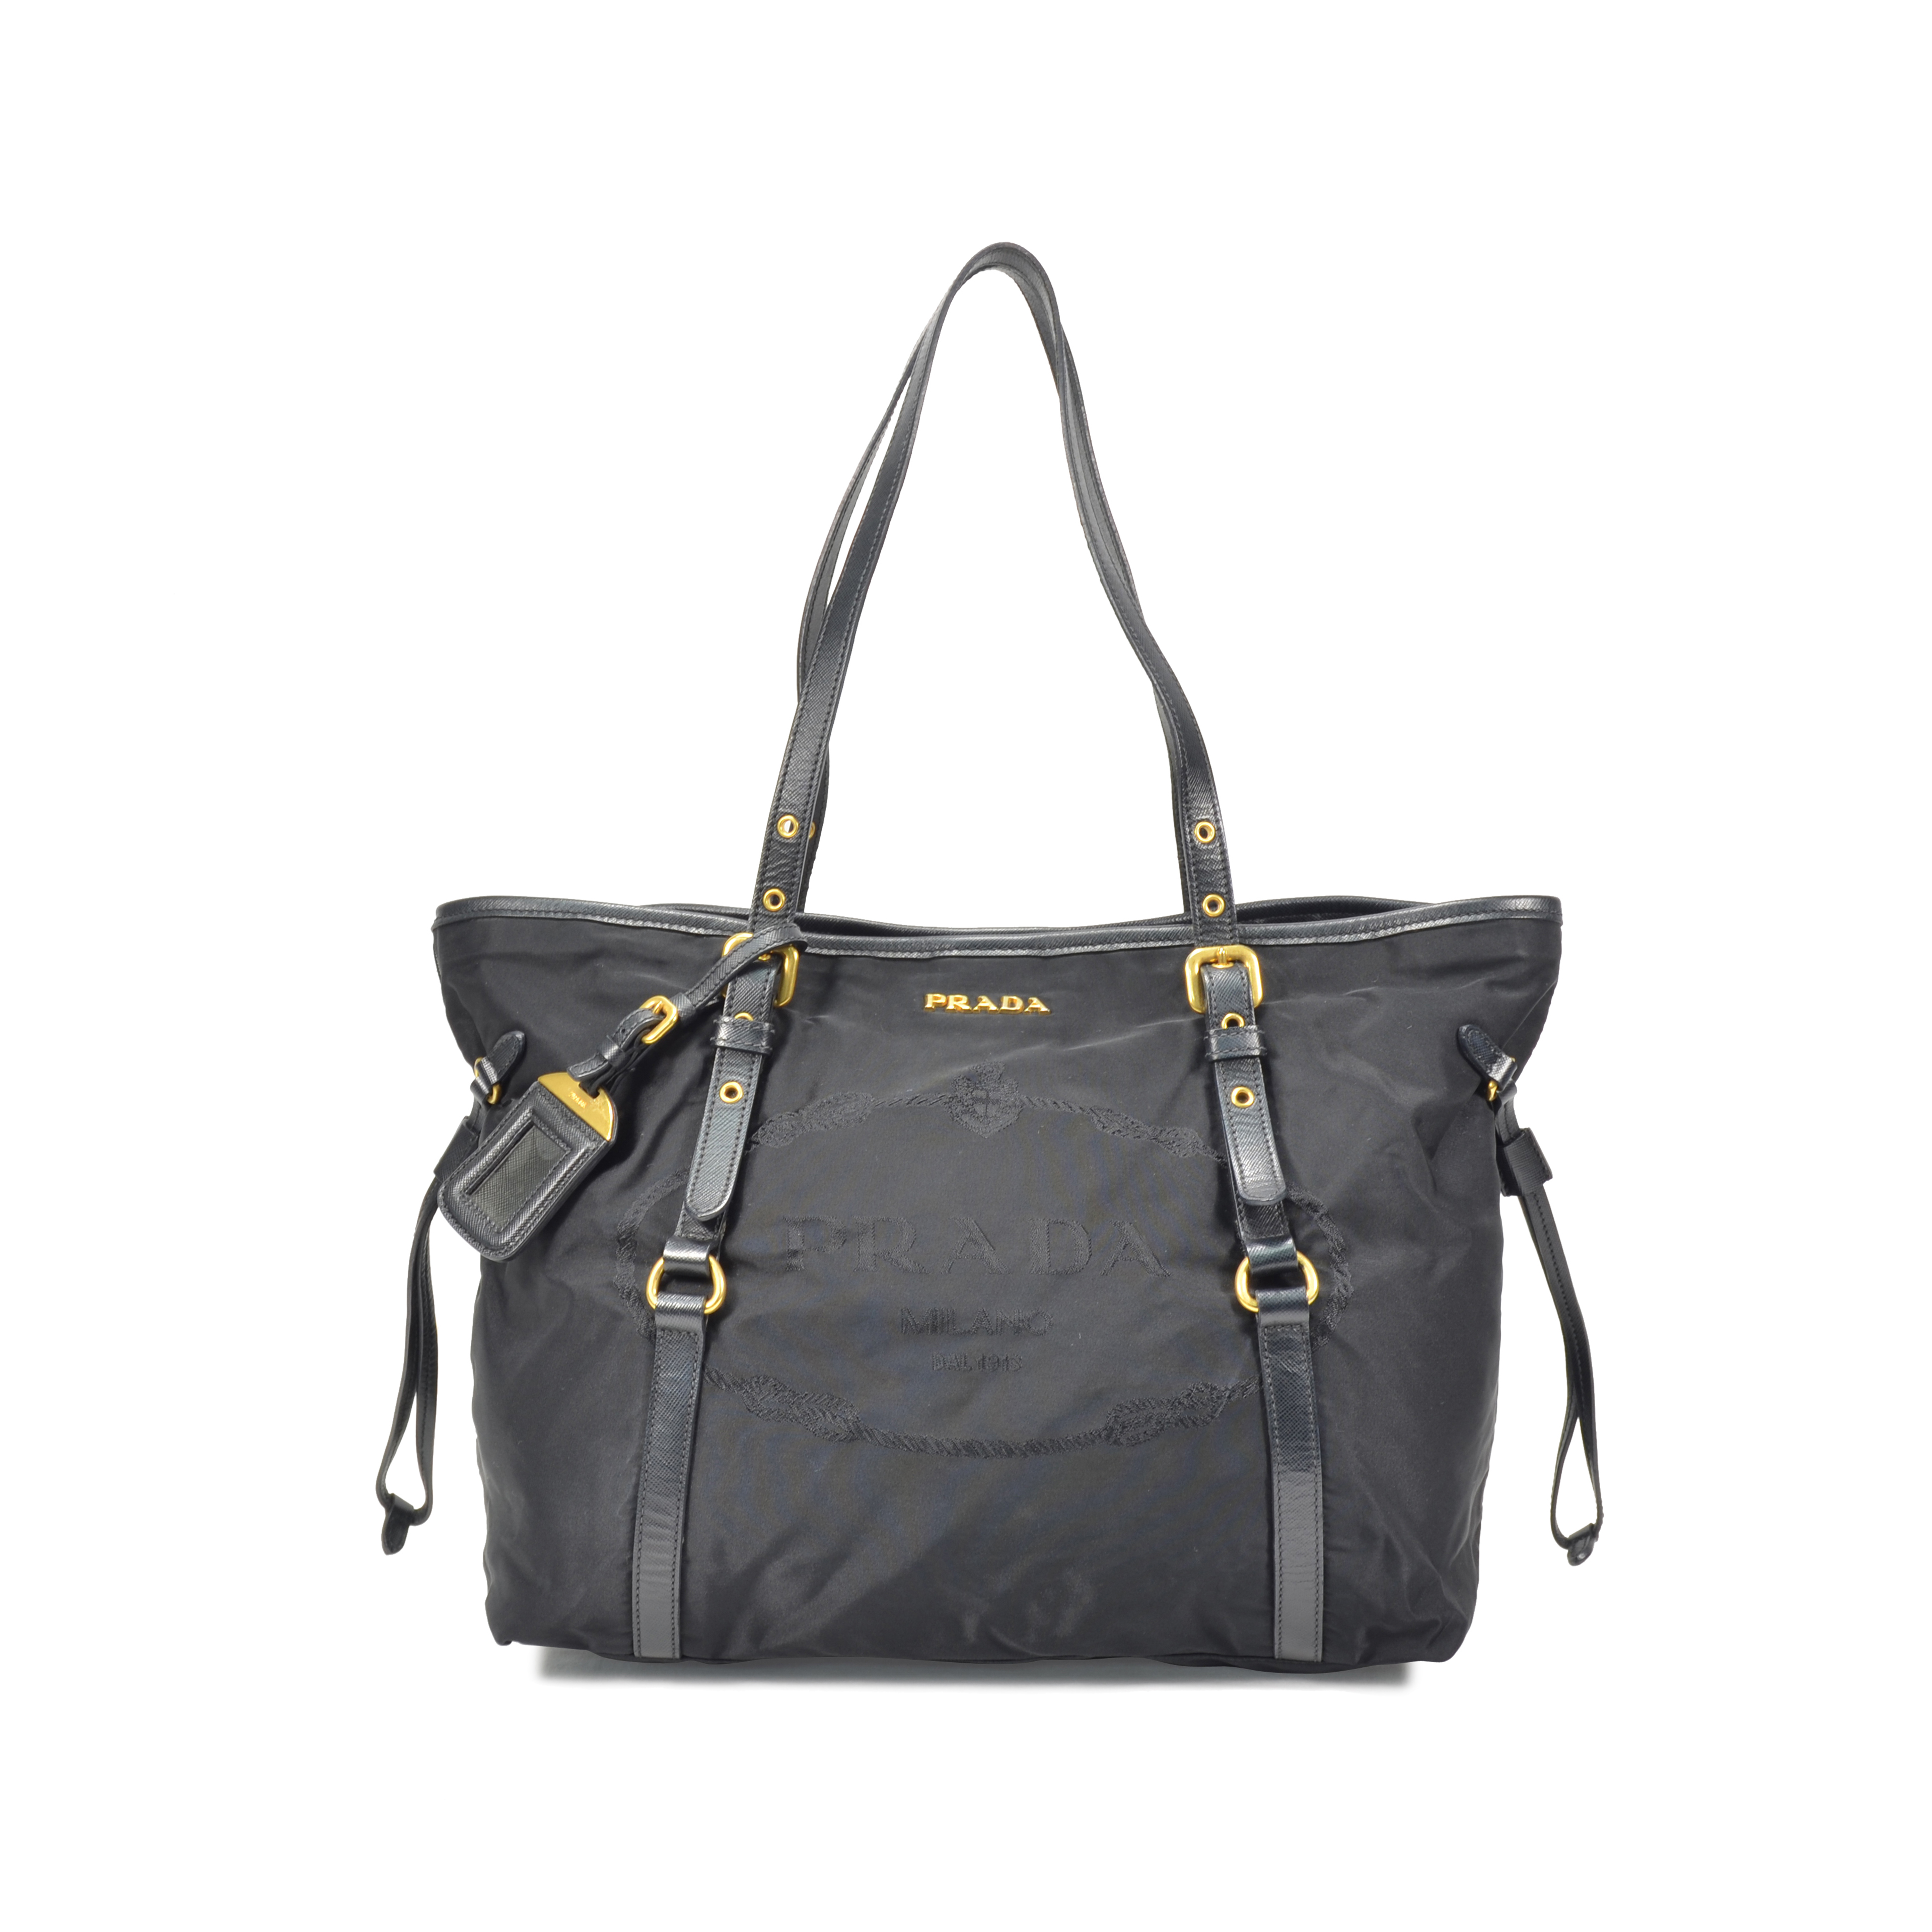 4ca77a3f4458 Authentic Second Hand Prada Nylon Tote Bag (PSS-320-00006) | THE FIFTH  COLLECTION